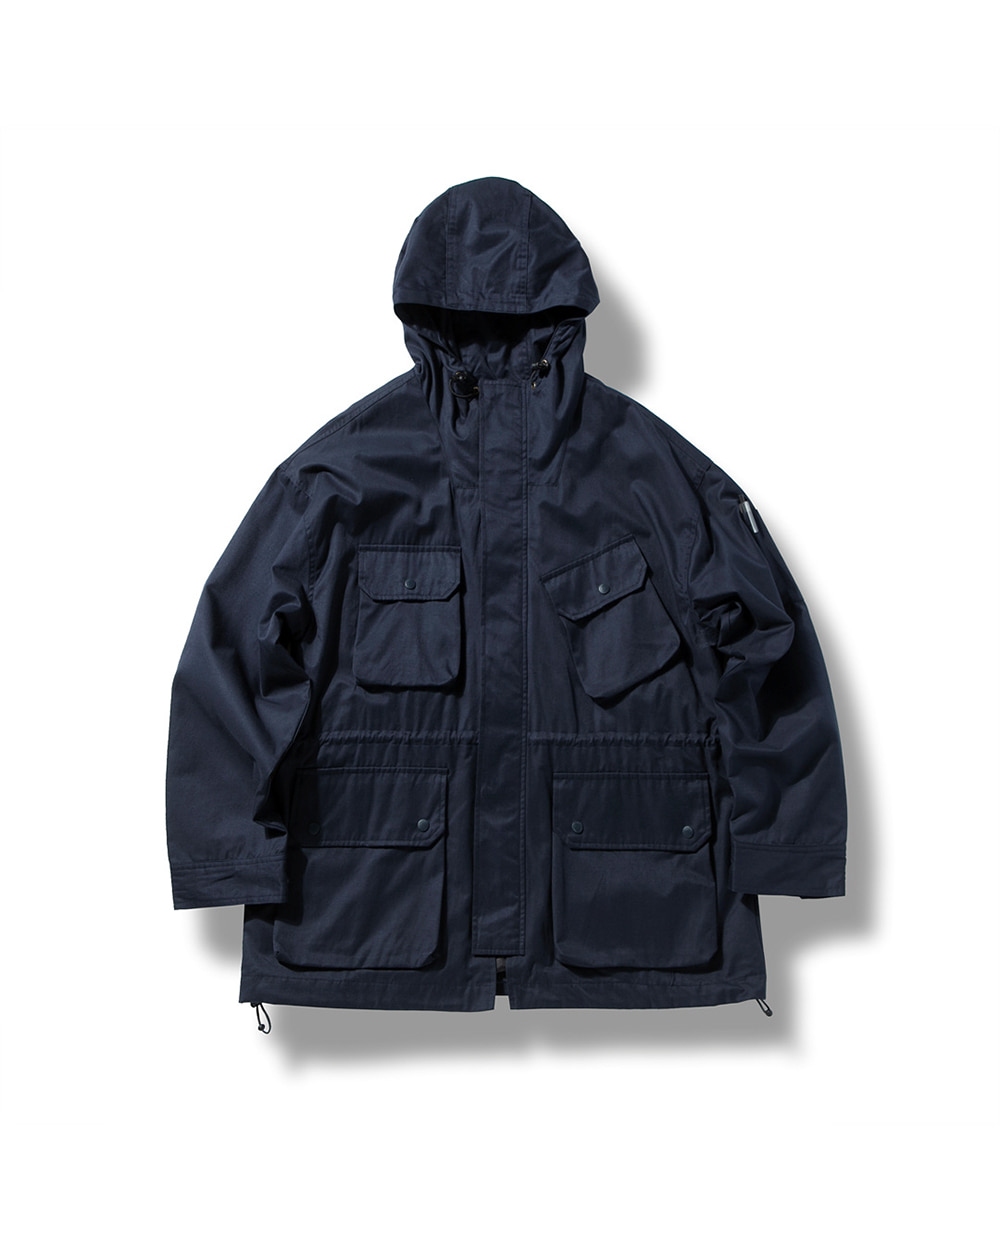 COMBAT MOUNTAIN JACKET NAVY